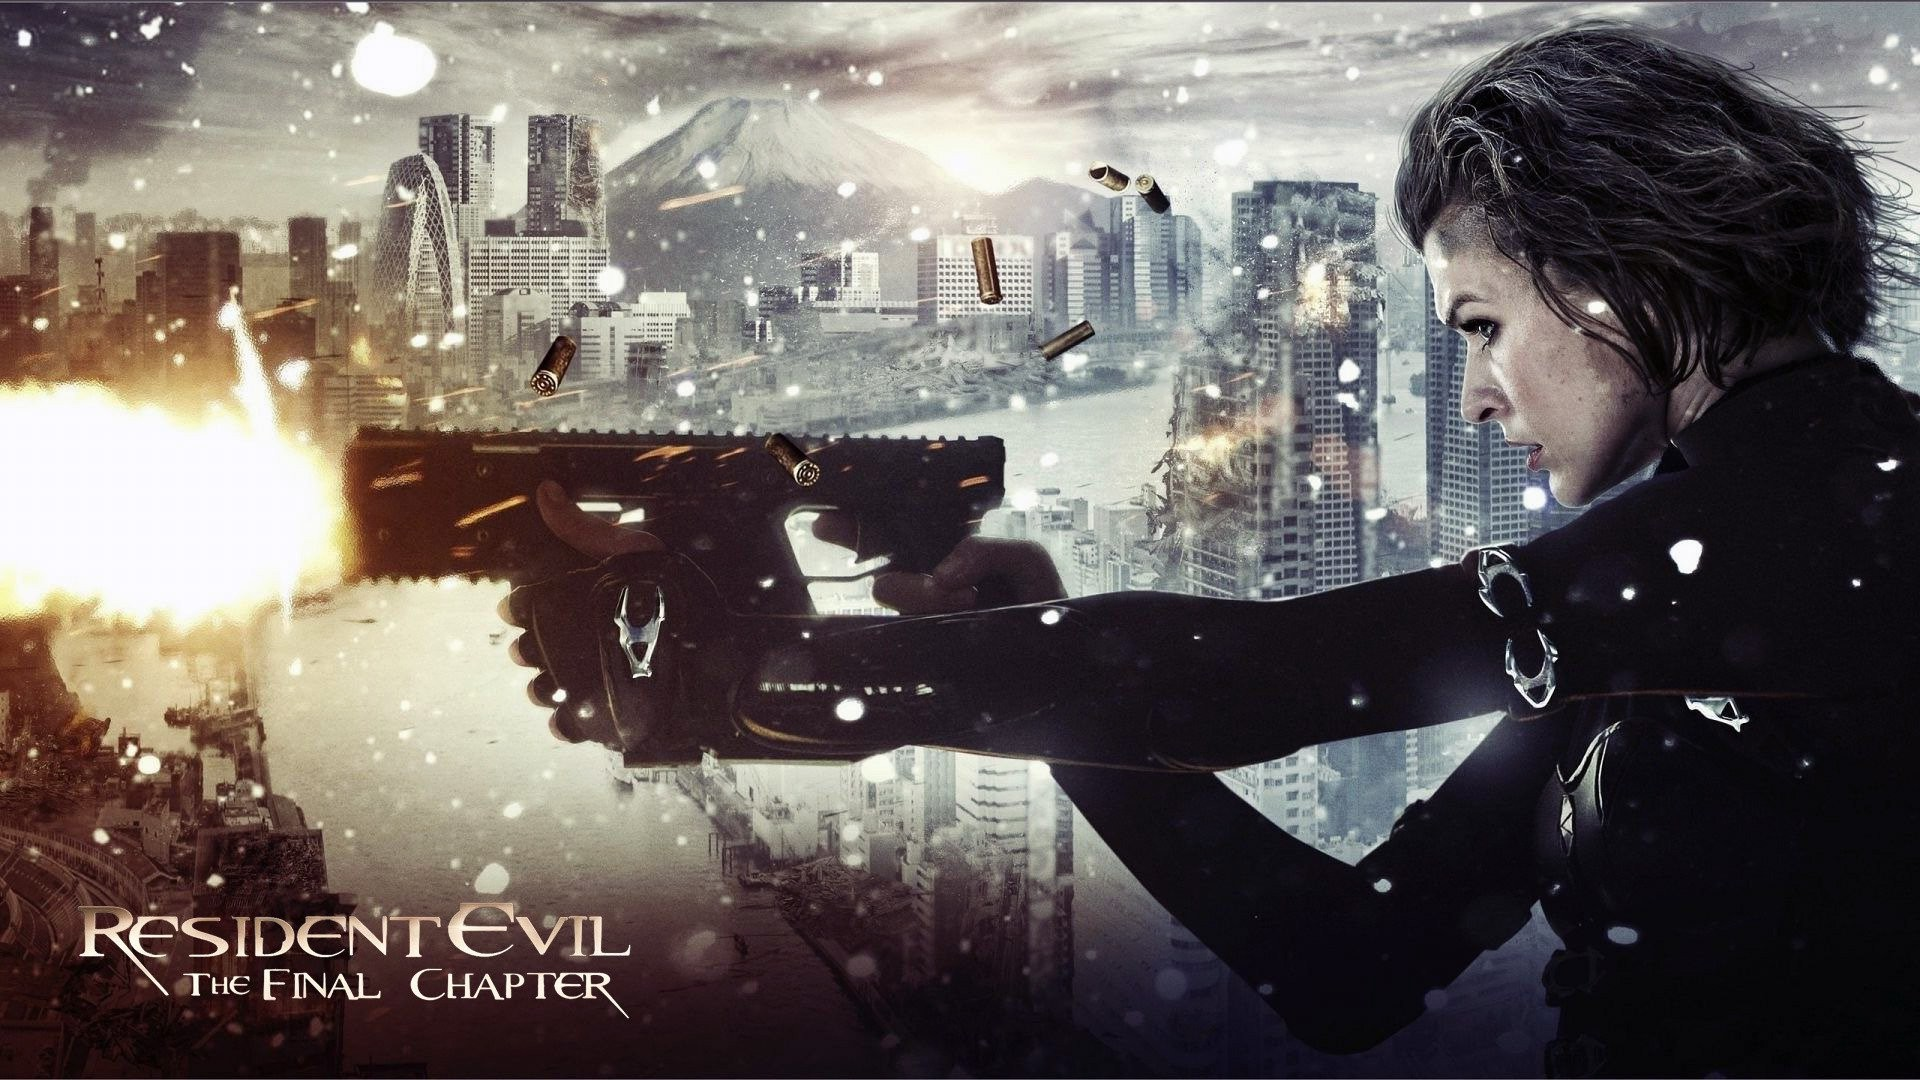 … Resident Evil The Final Chapter Pictures …